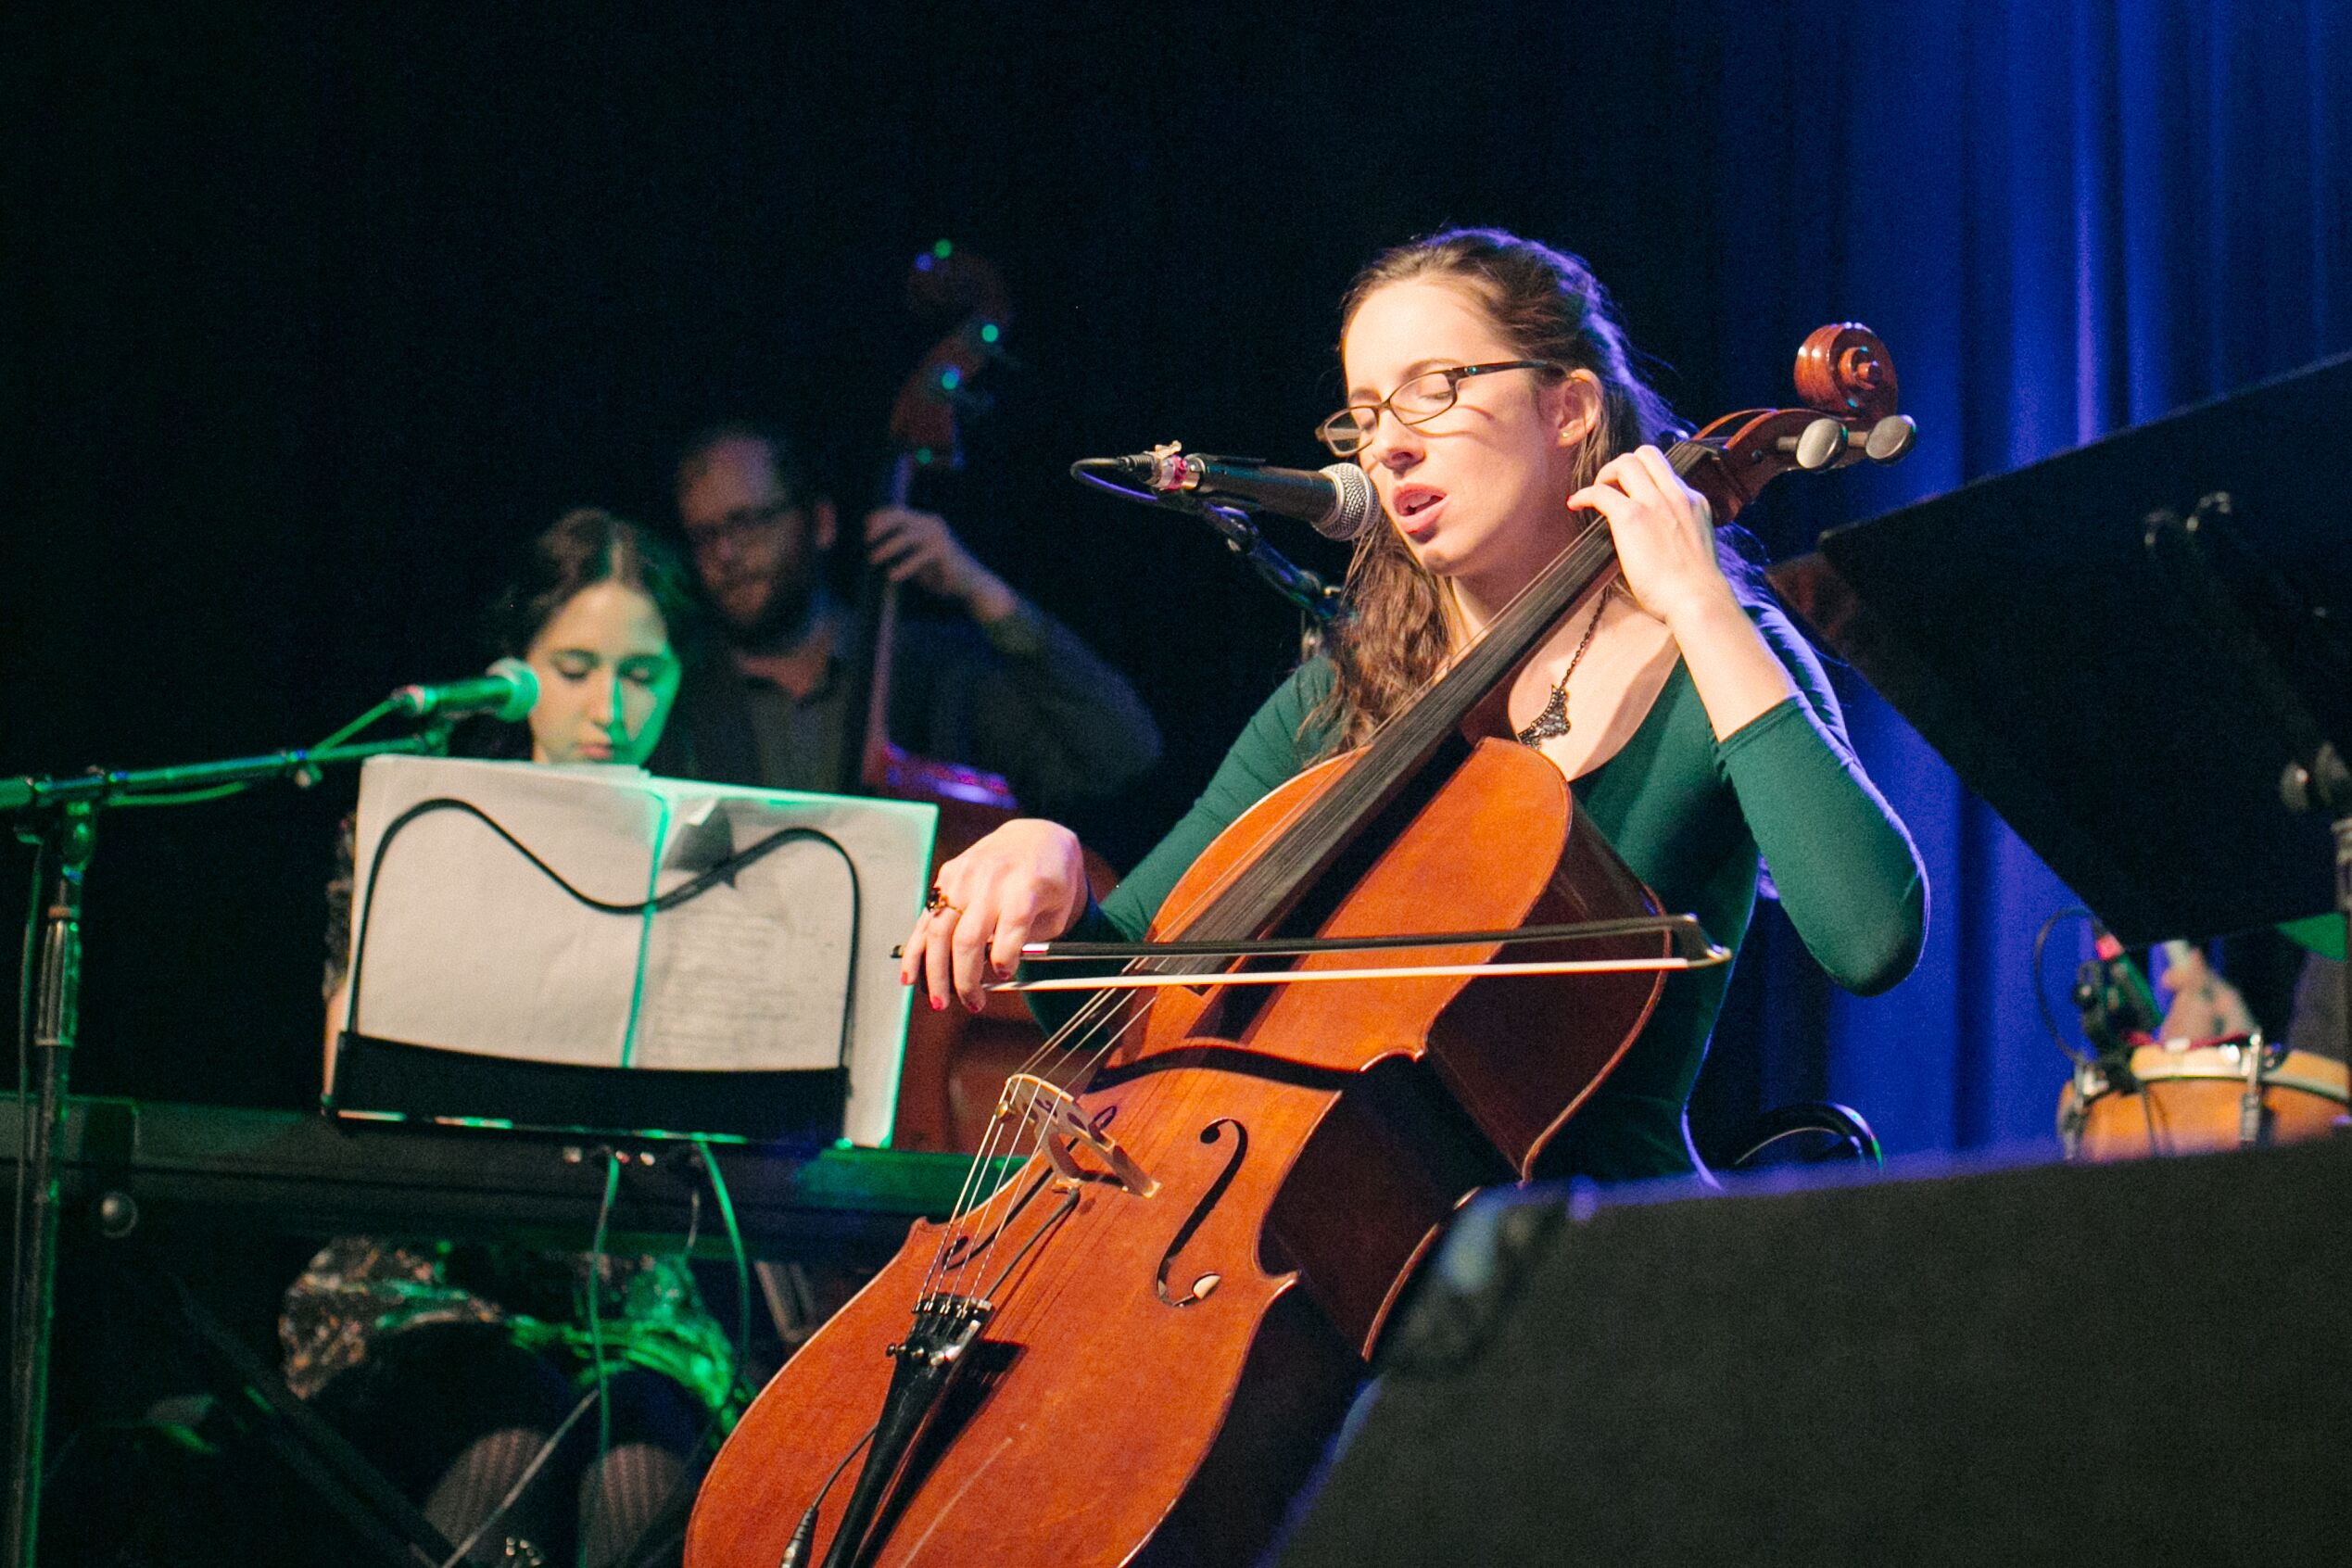 Pippa Hoover performing (landscape). <br> Photo by Norah Hoover.